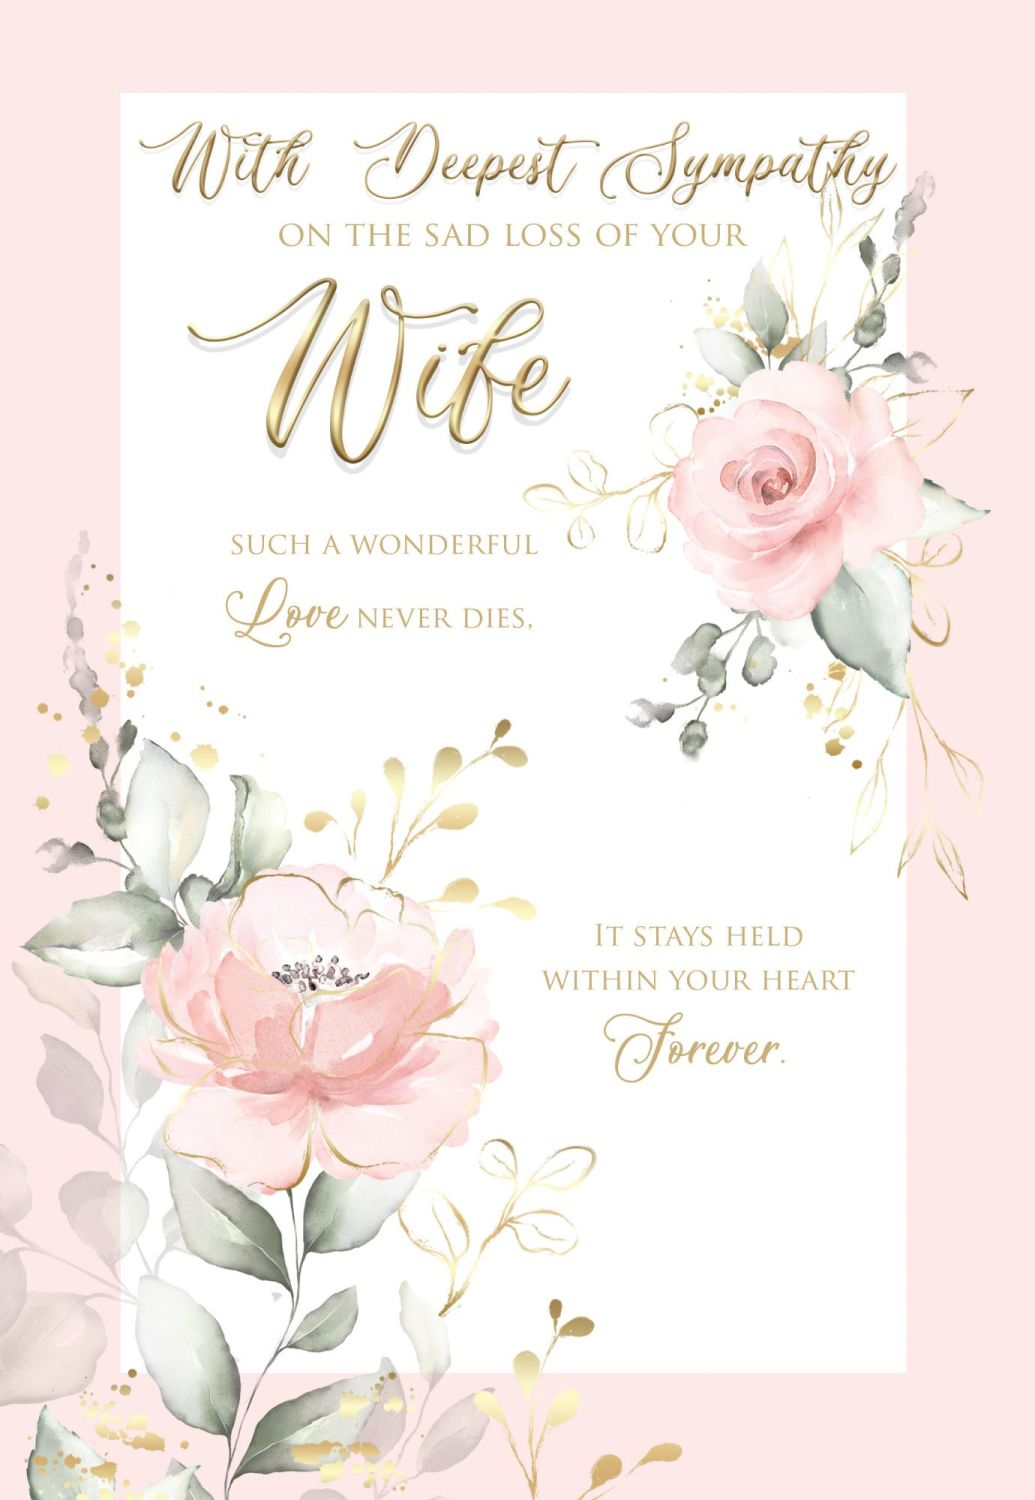 Wife Sympathy Cards - With DEEPEST Sympathy On THE Sad Loss Of YOUR WIFE -